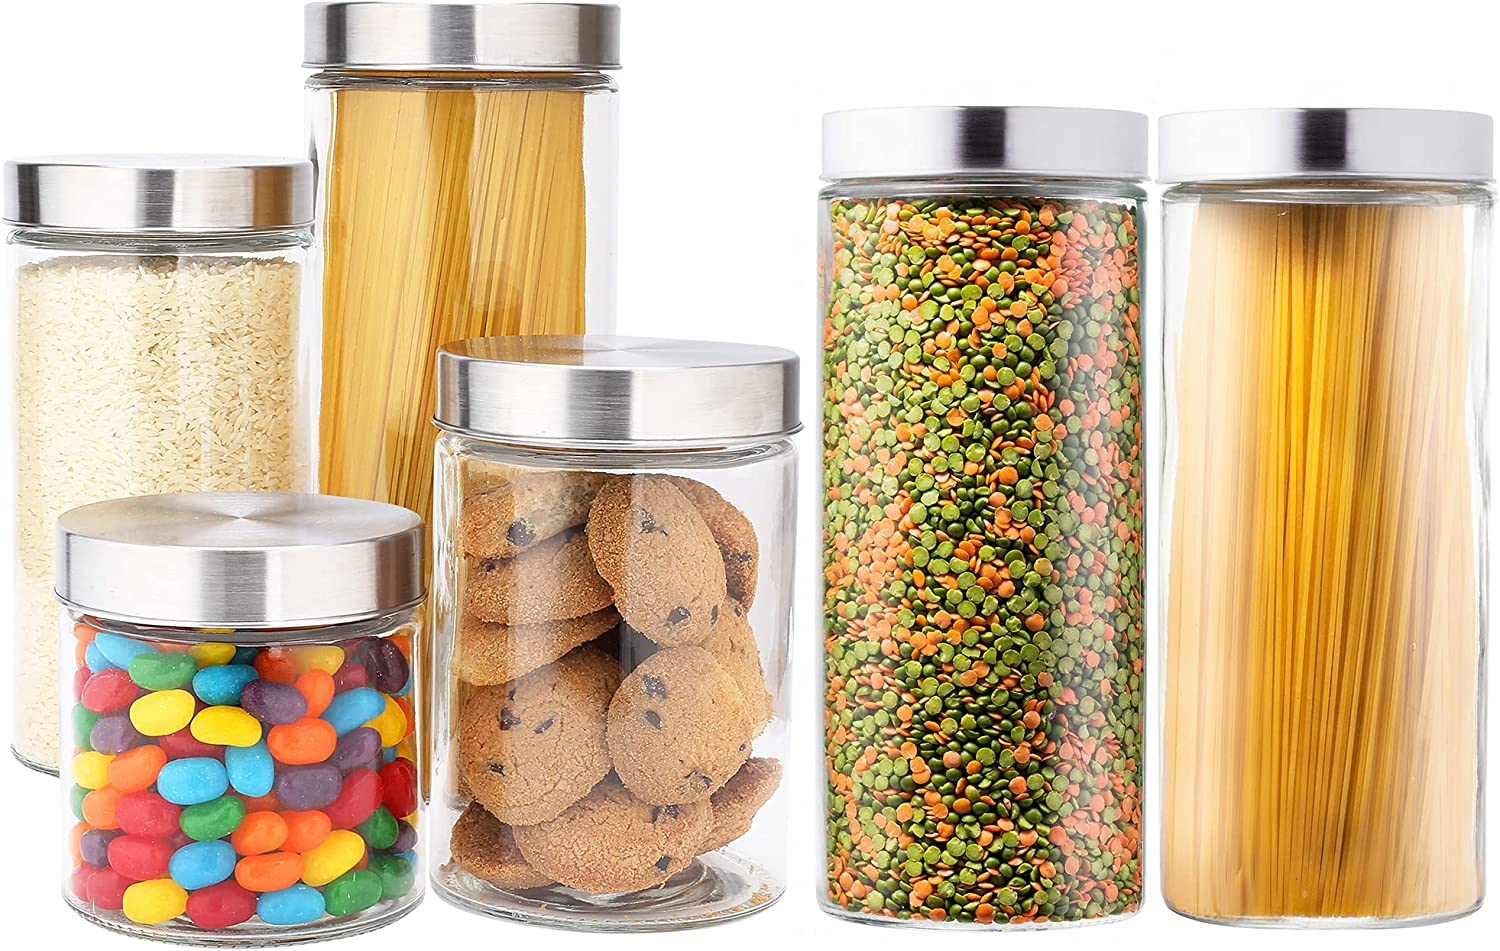 EatNeat Set of 6 Large Glass Kitchen Canisters with Stainless Steel Lids - Food Storage Containers that Offer Modern Style and Clean Kitchen Organization - 72, 55, 38, and 27 Ounce Sizes